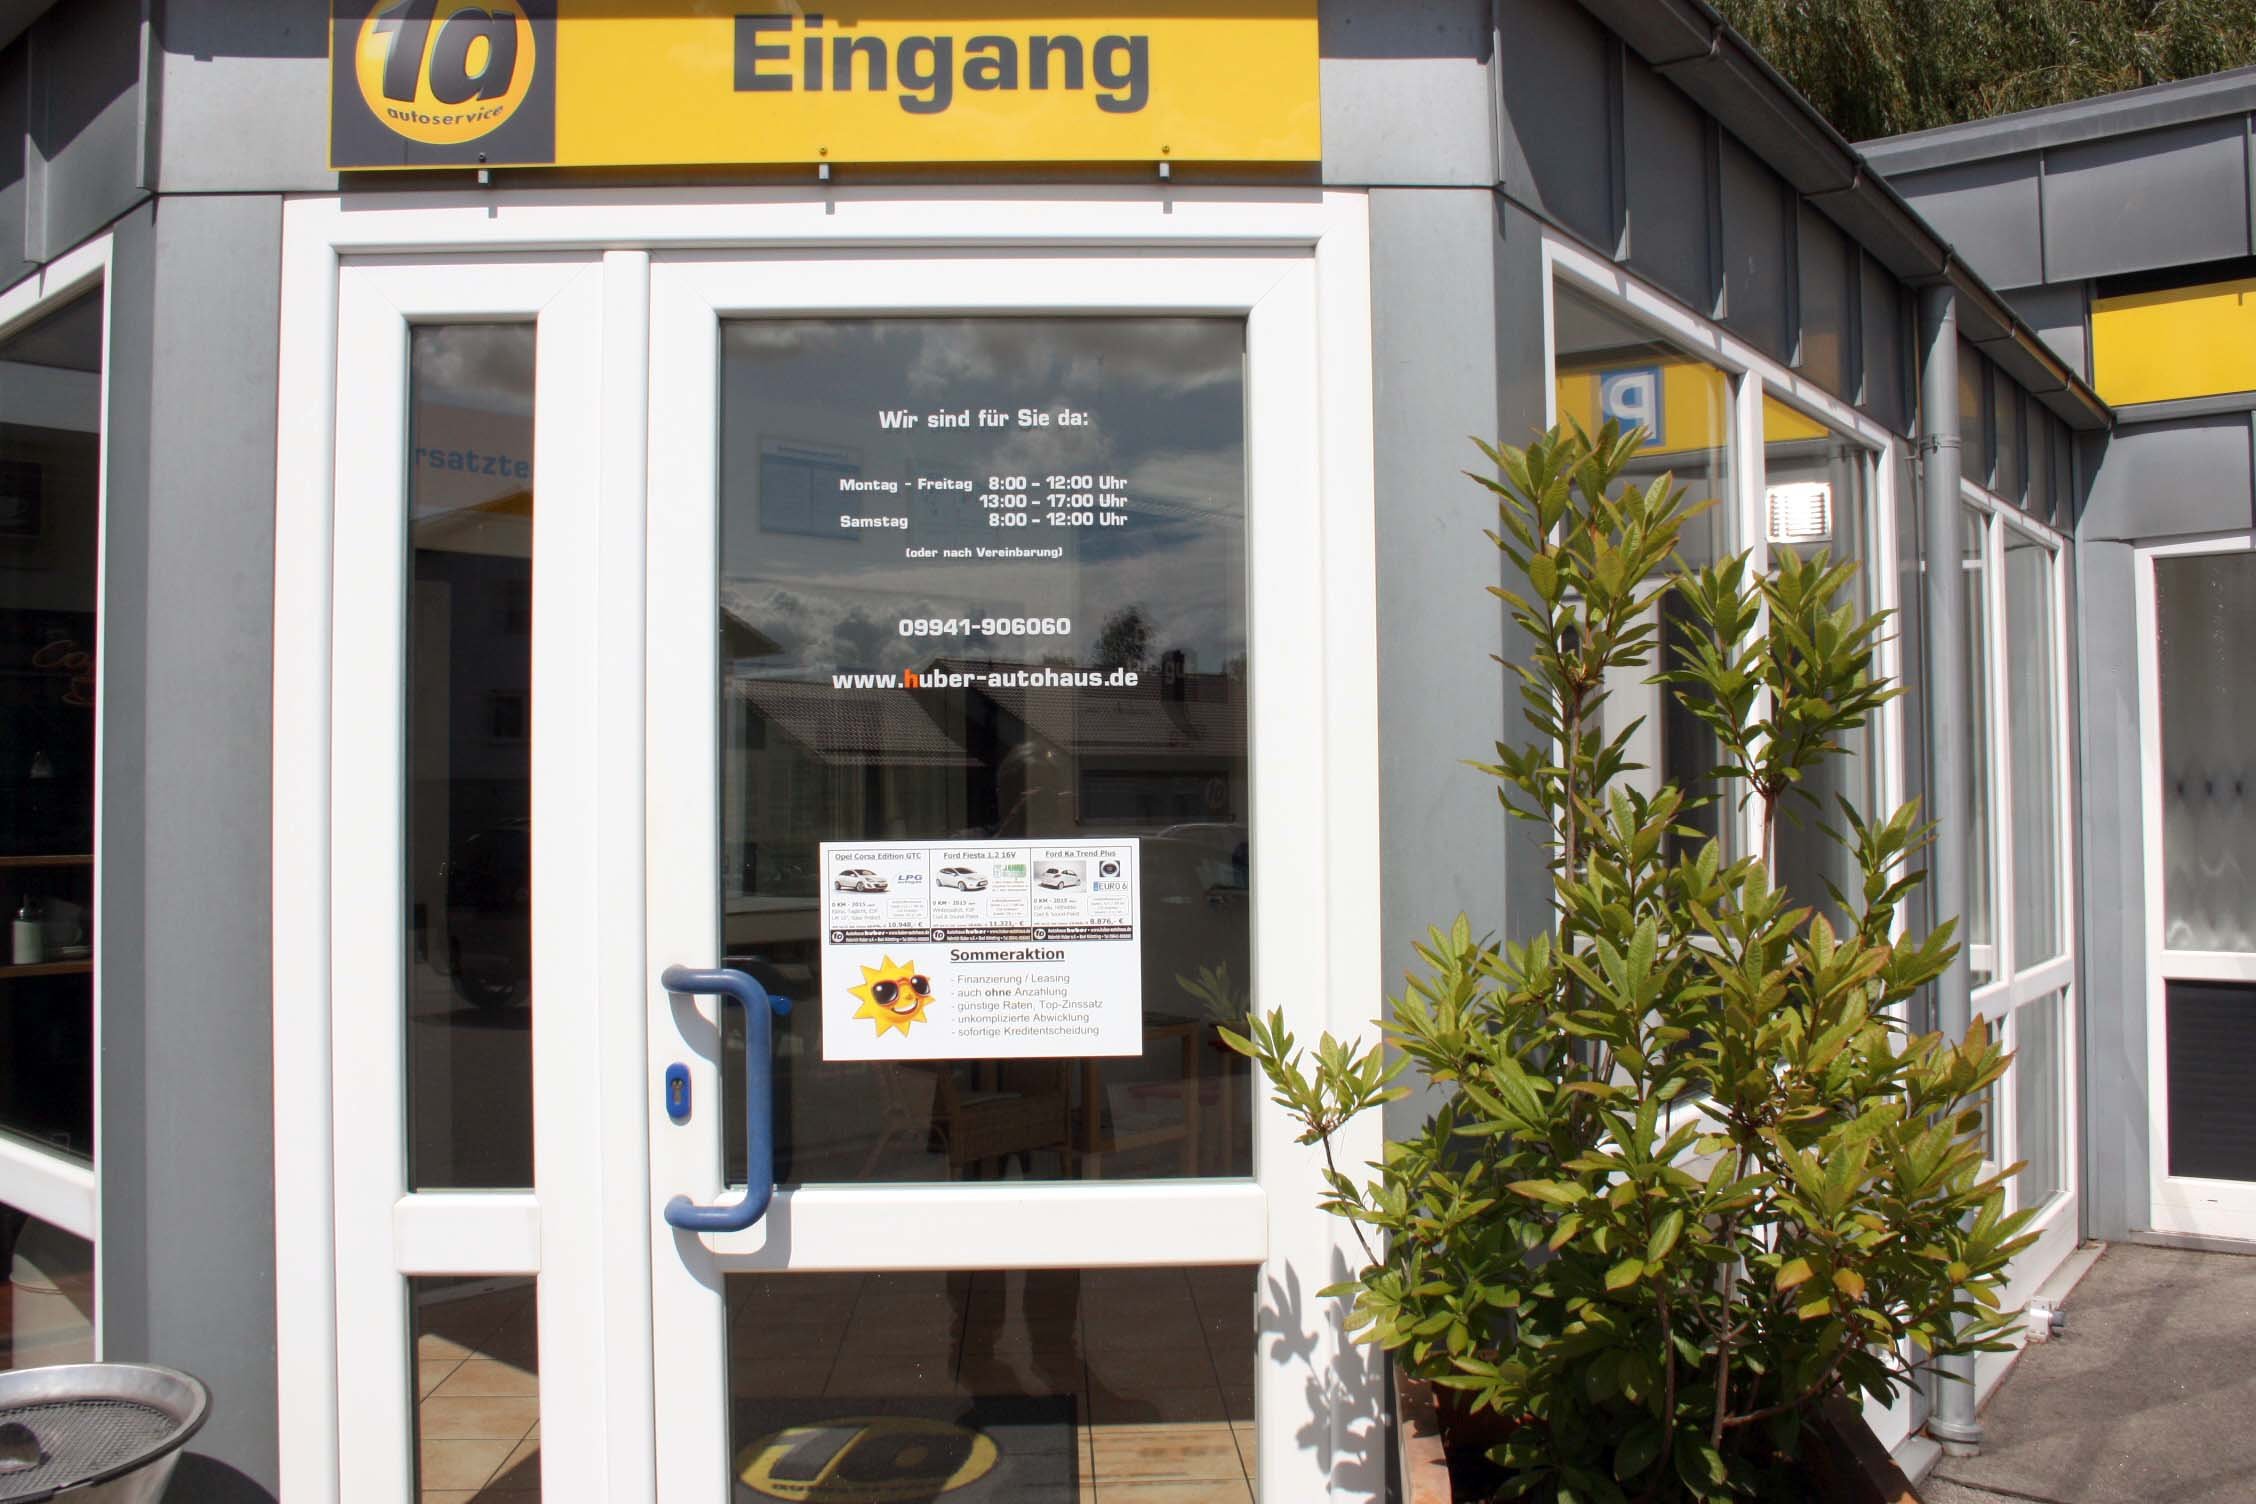 Autohaus Huber - Eingang Zentrale